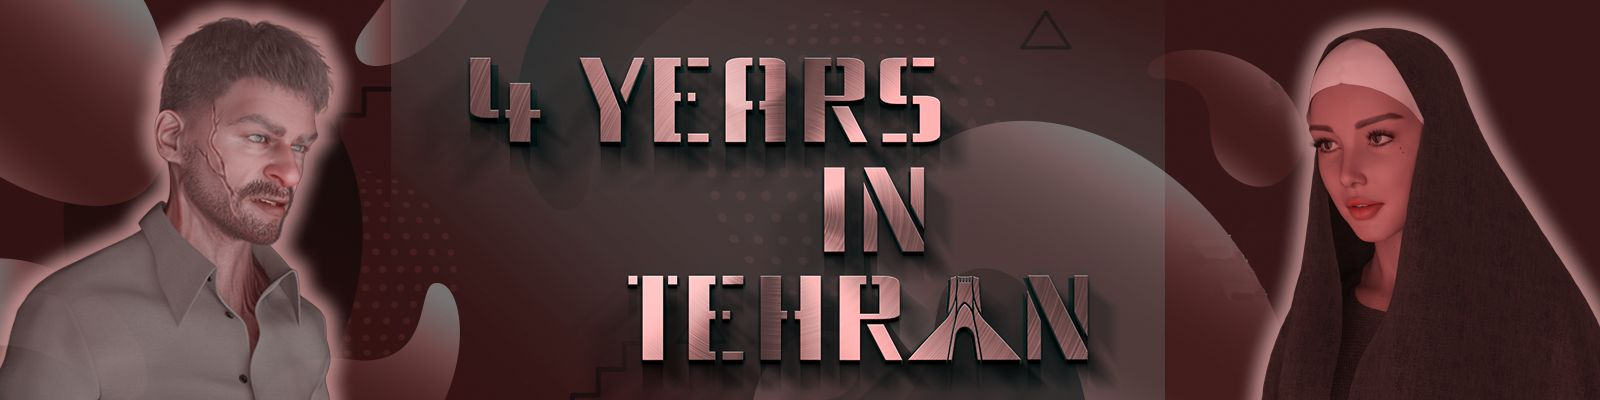 4 Years In Tehran Apk Android Download